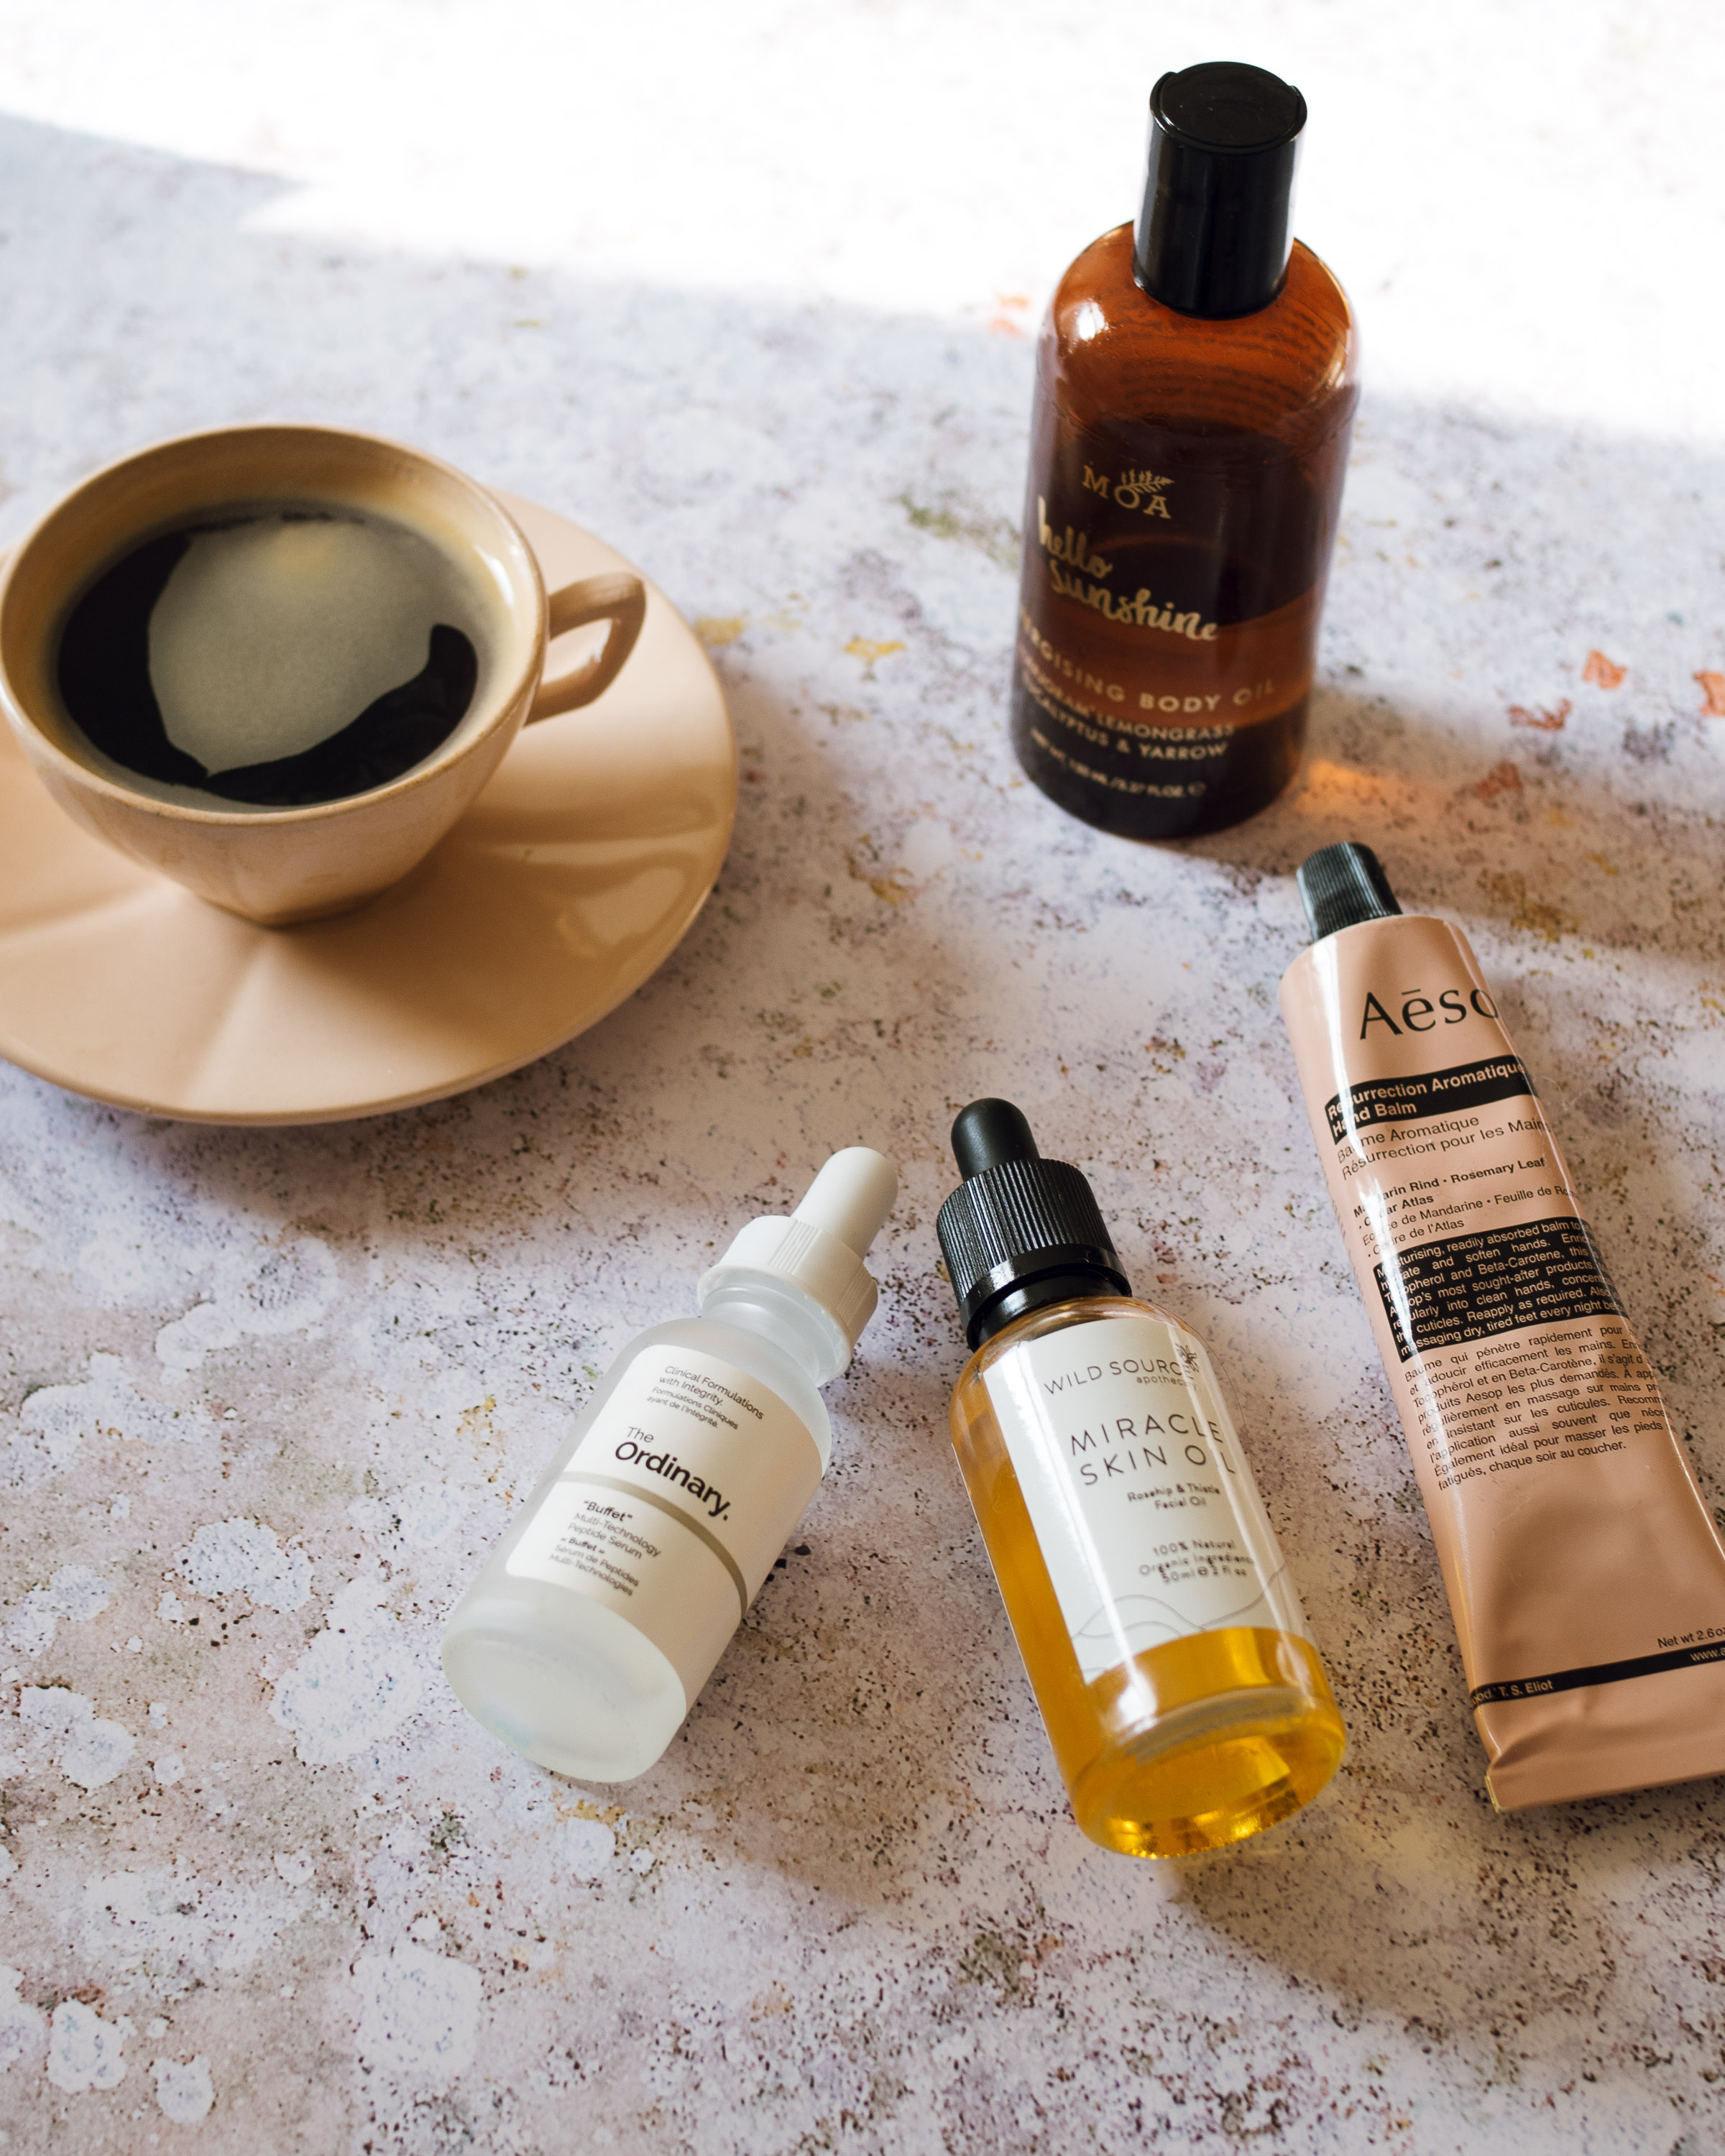 Beauty | My skin care routine - updated